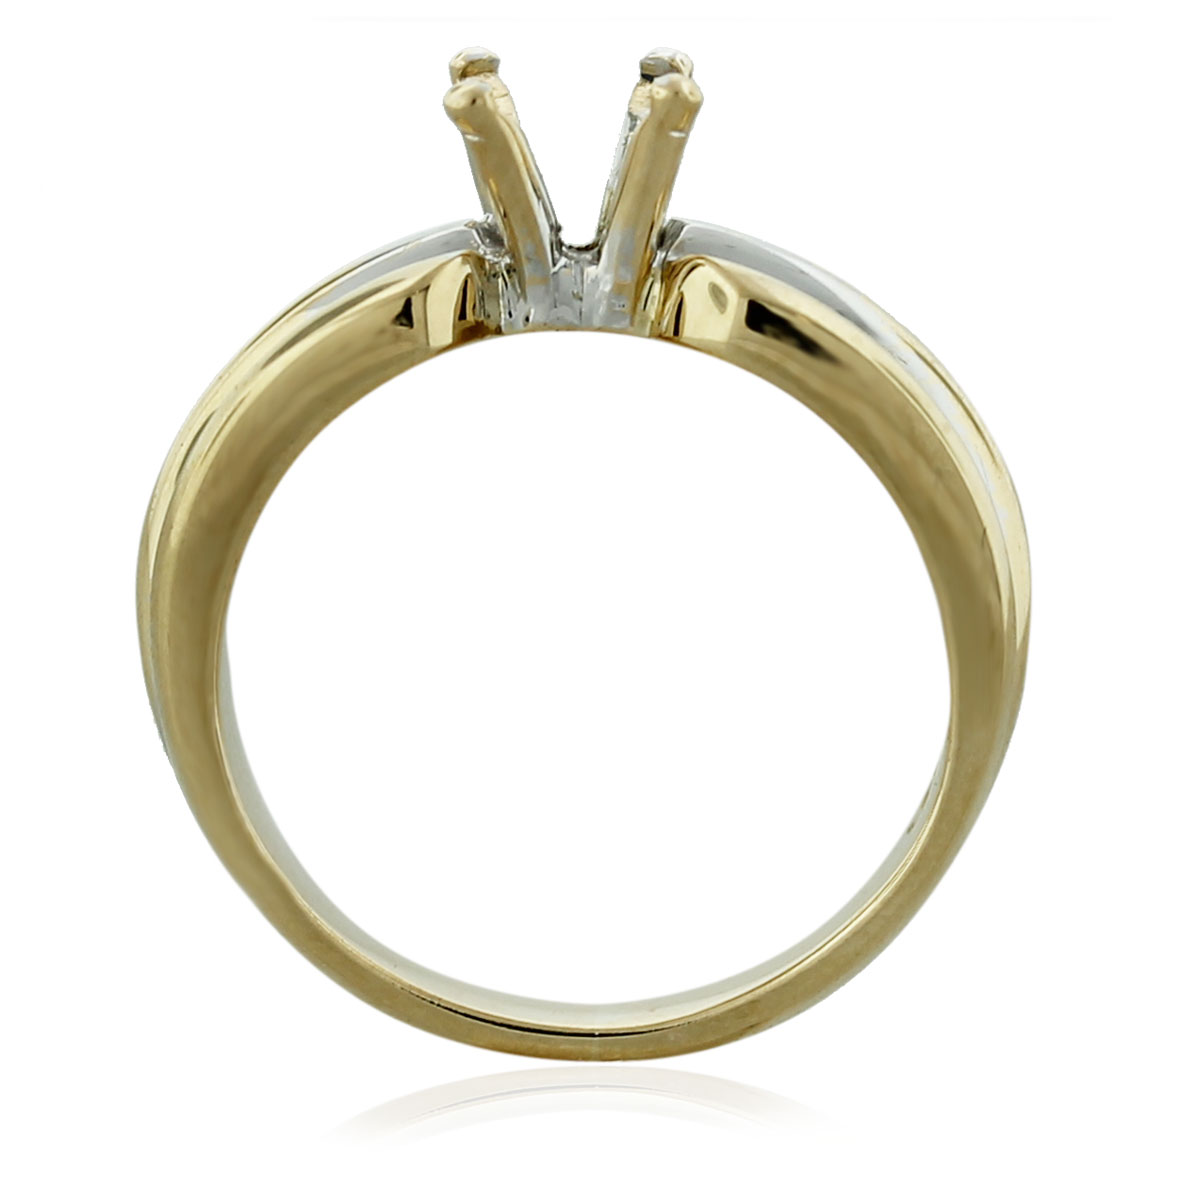 14kt Yellow gold 4 Prong Solitaire Engagement Ring Mounting South Florida